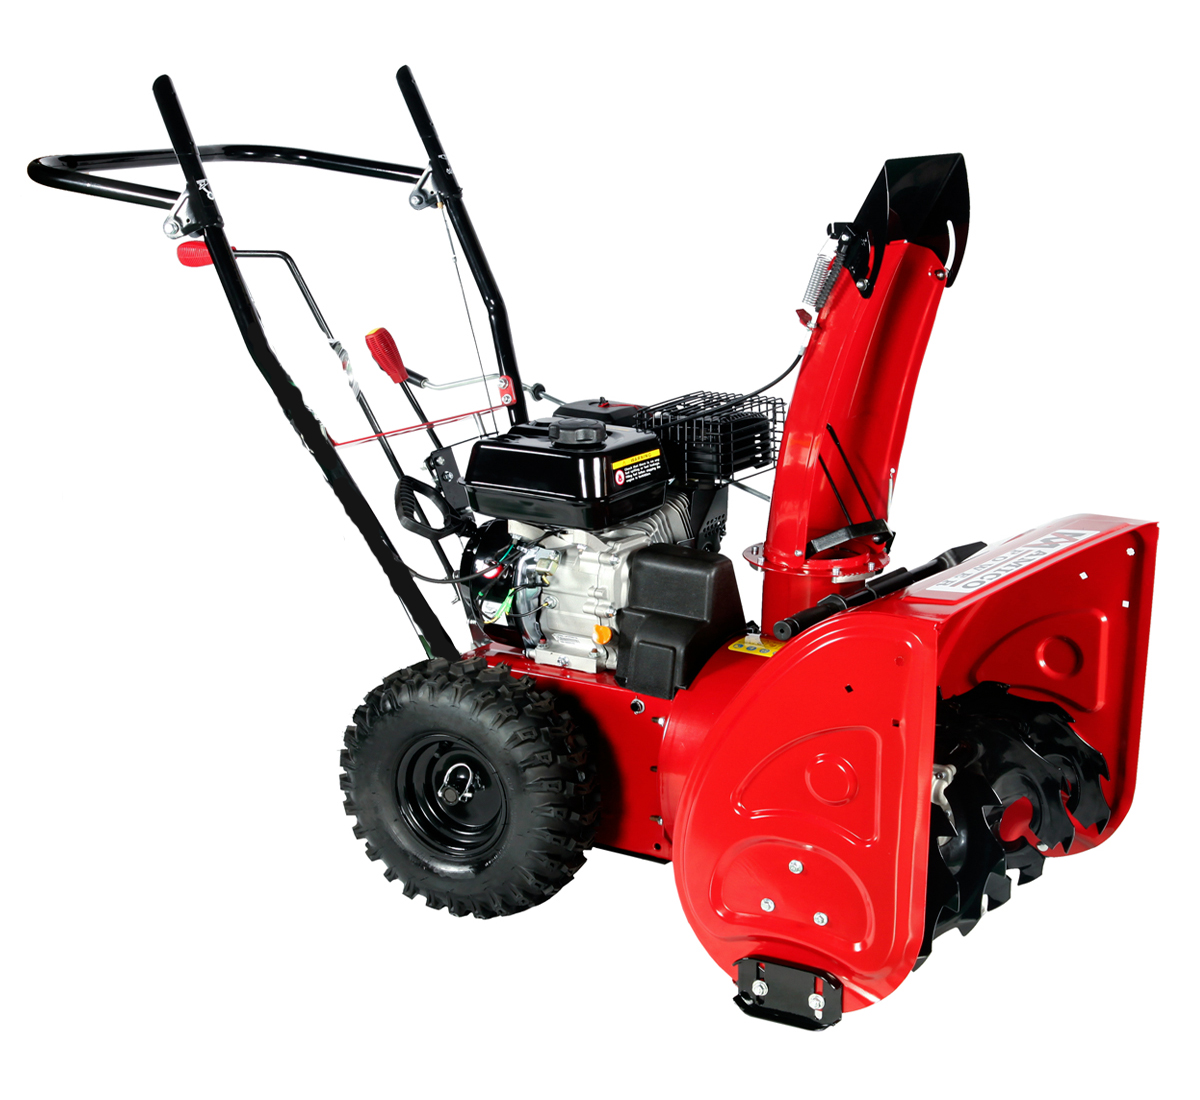 AST 24 inch 196cc Two-Stage Gas Snow Blower Snow Thrower Amico Power by Amico Power Corp